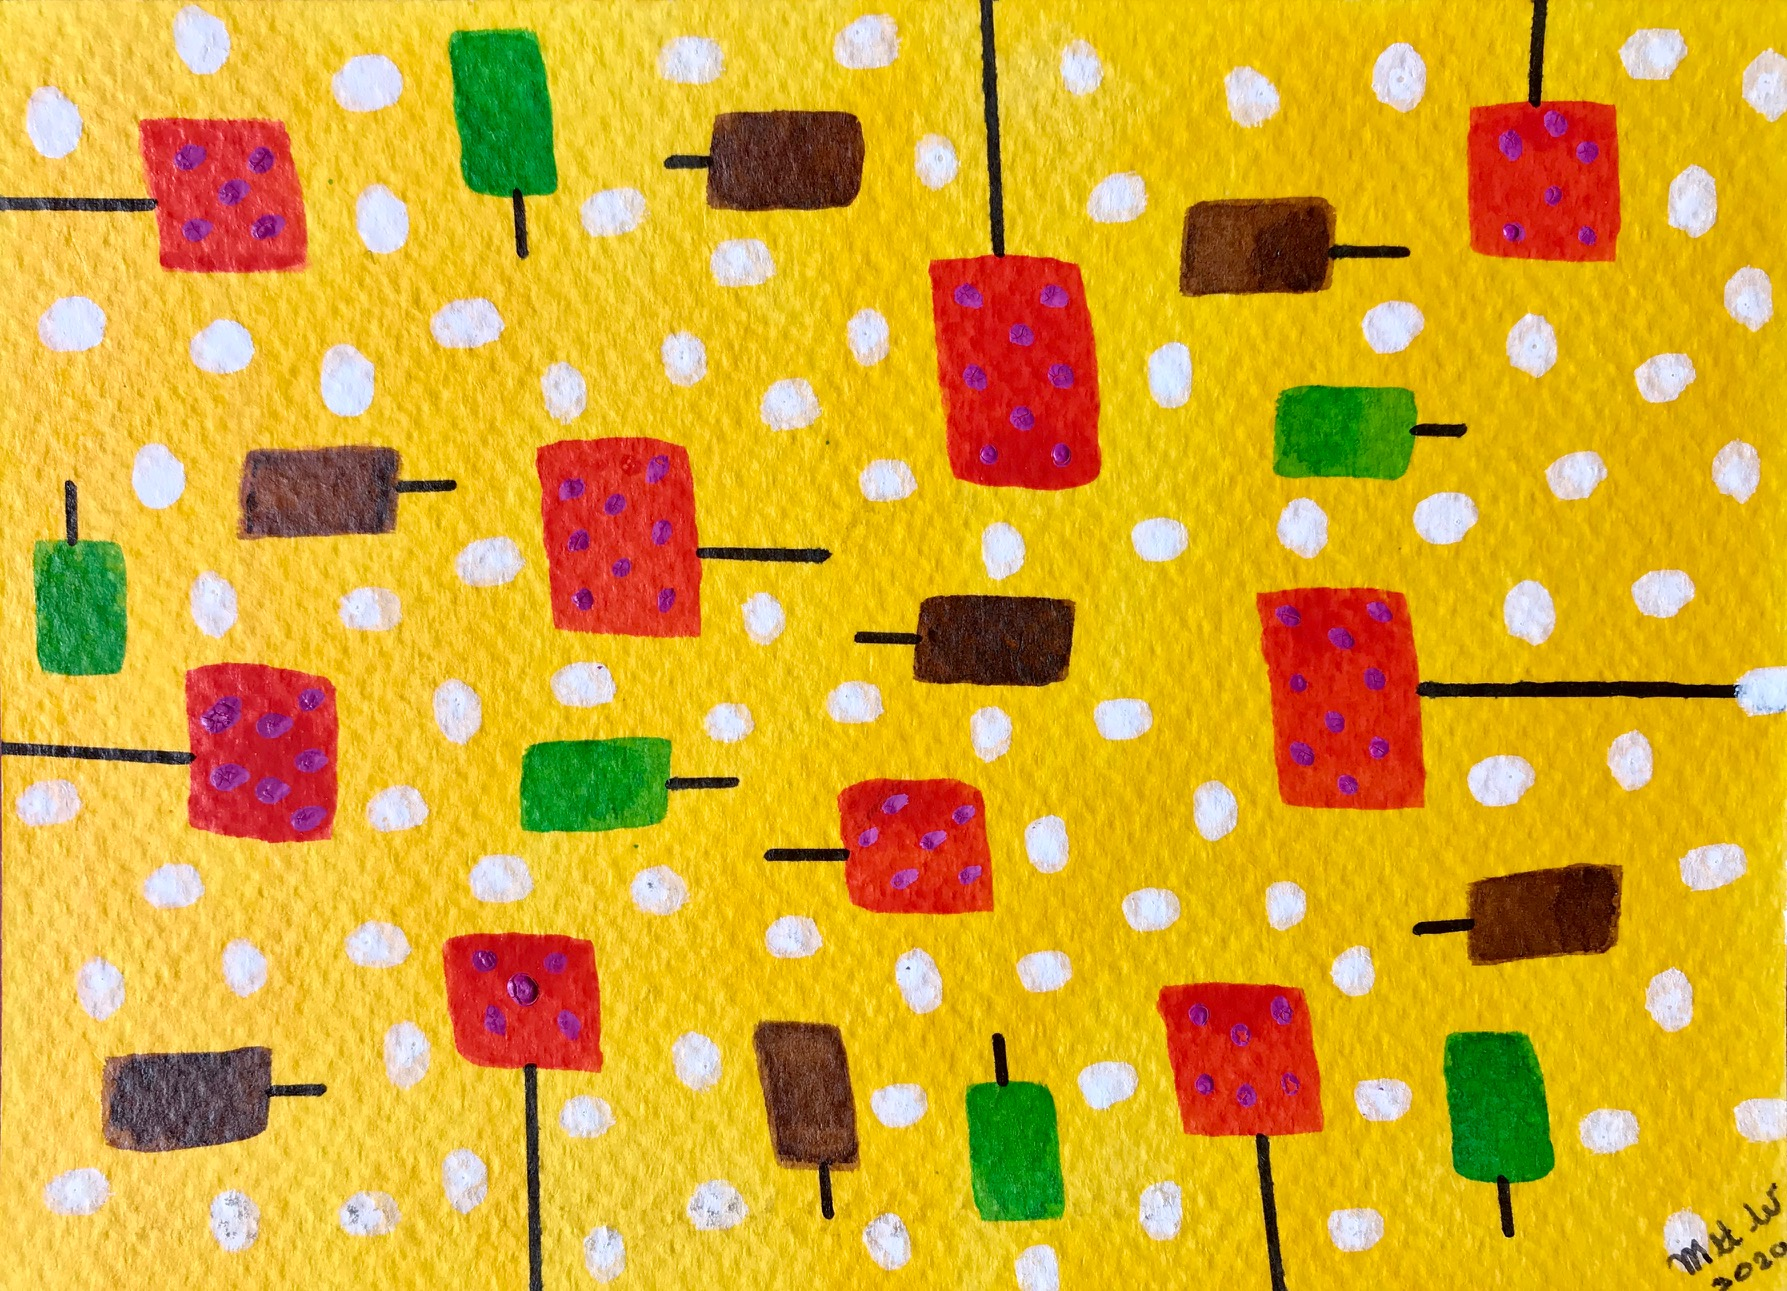 couloured squares on yellow background